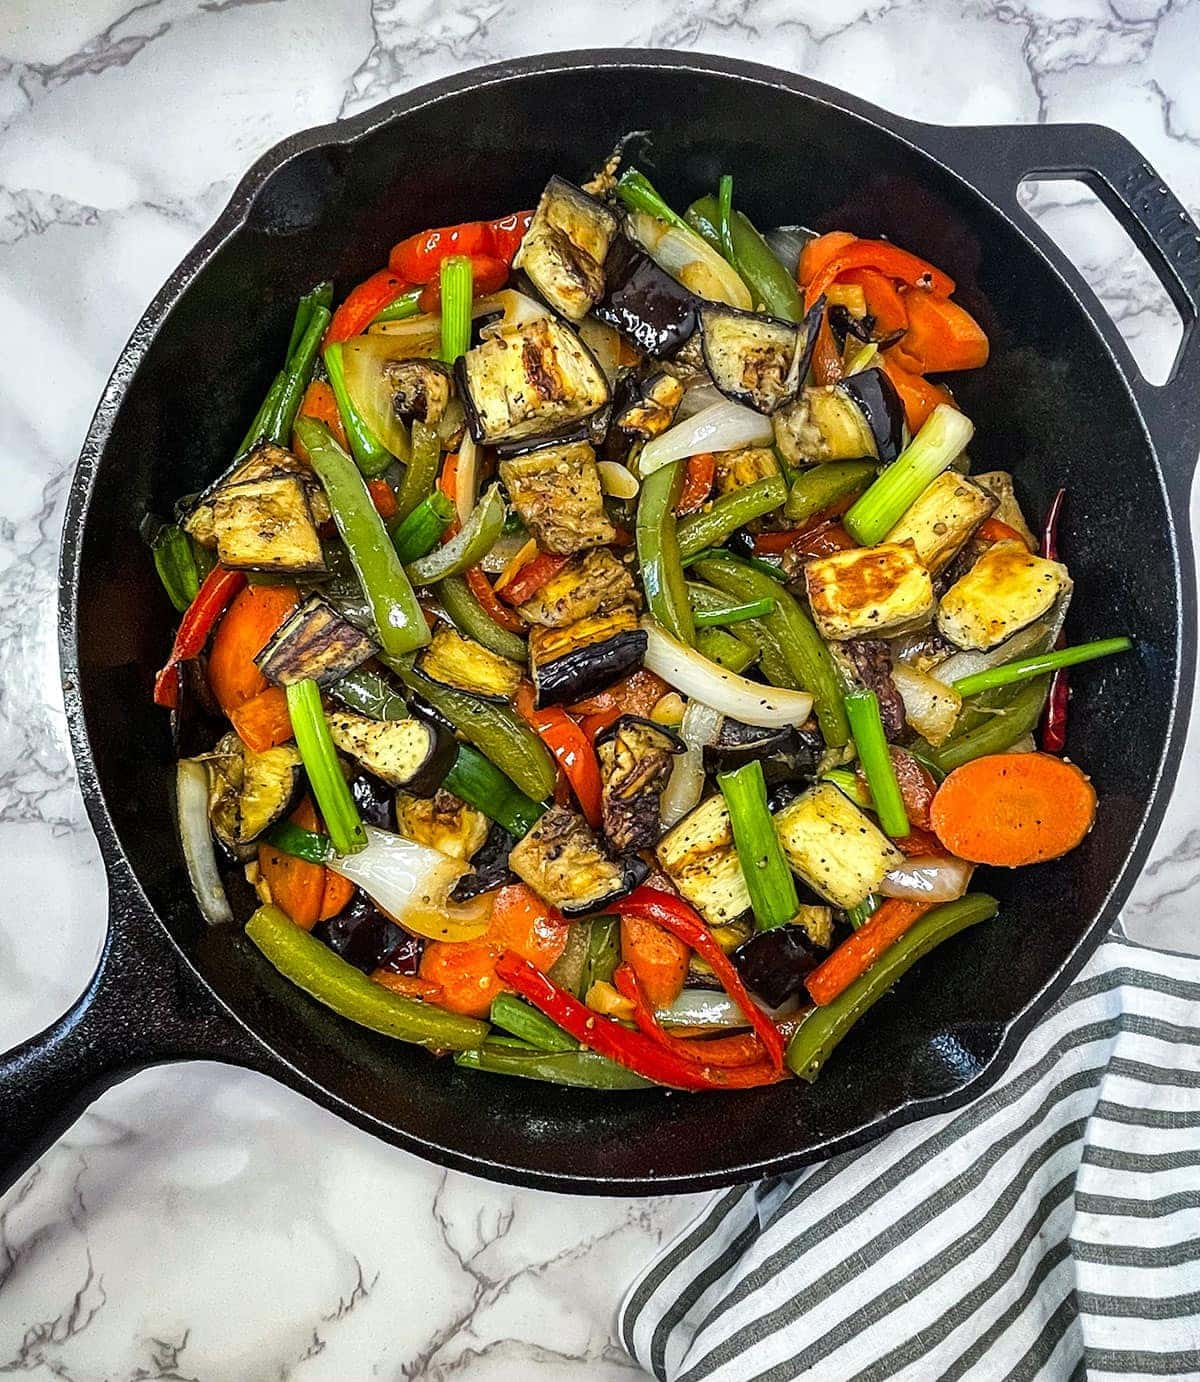 eggplant stir fry in a cast iron skillet on a white marbled background